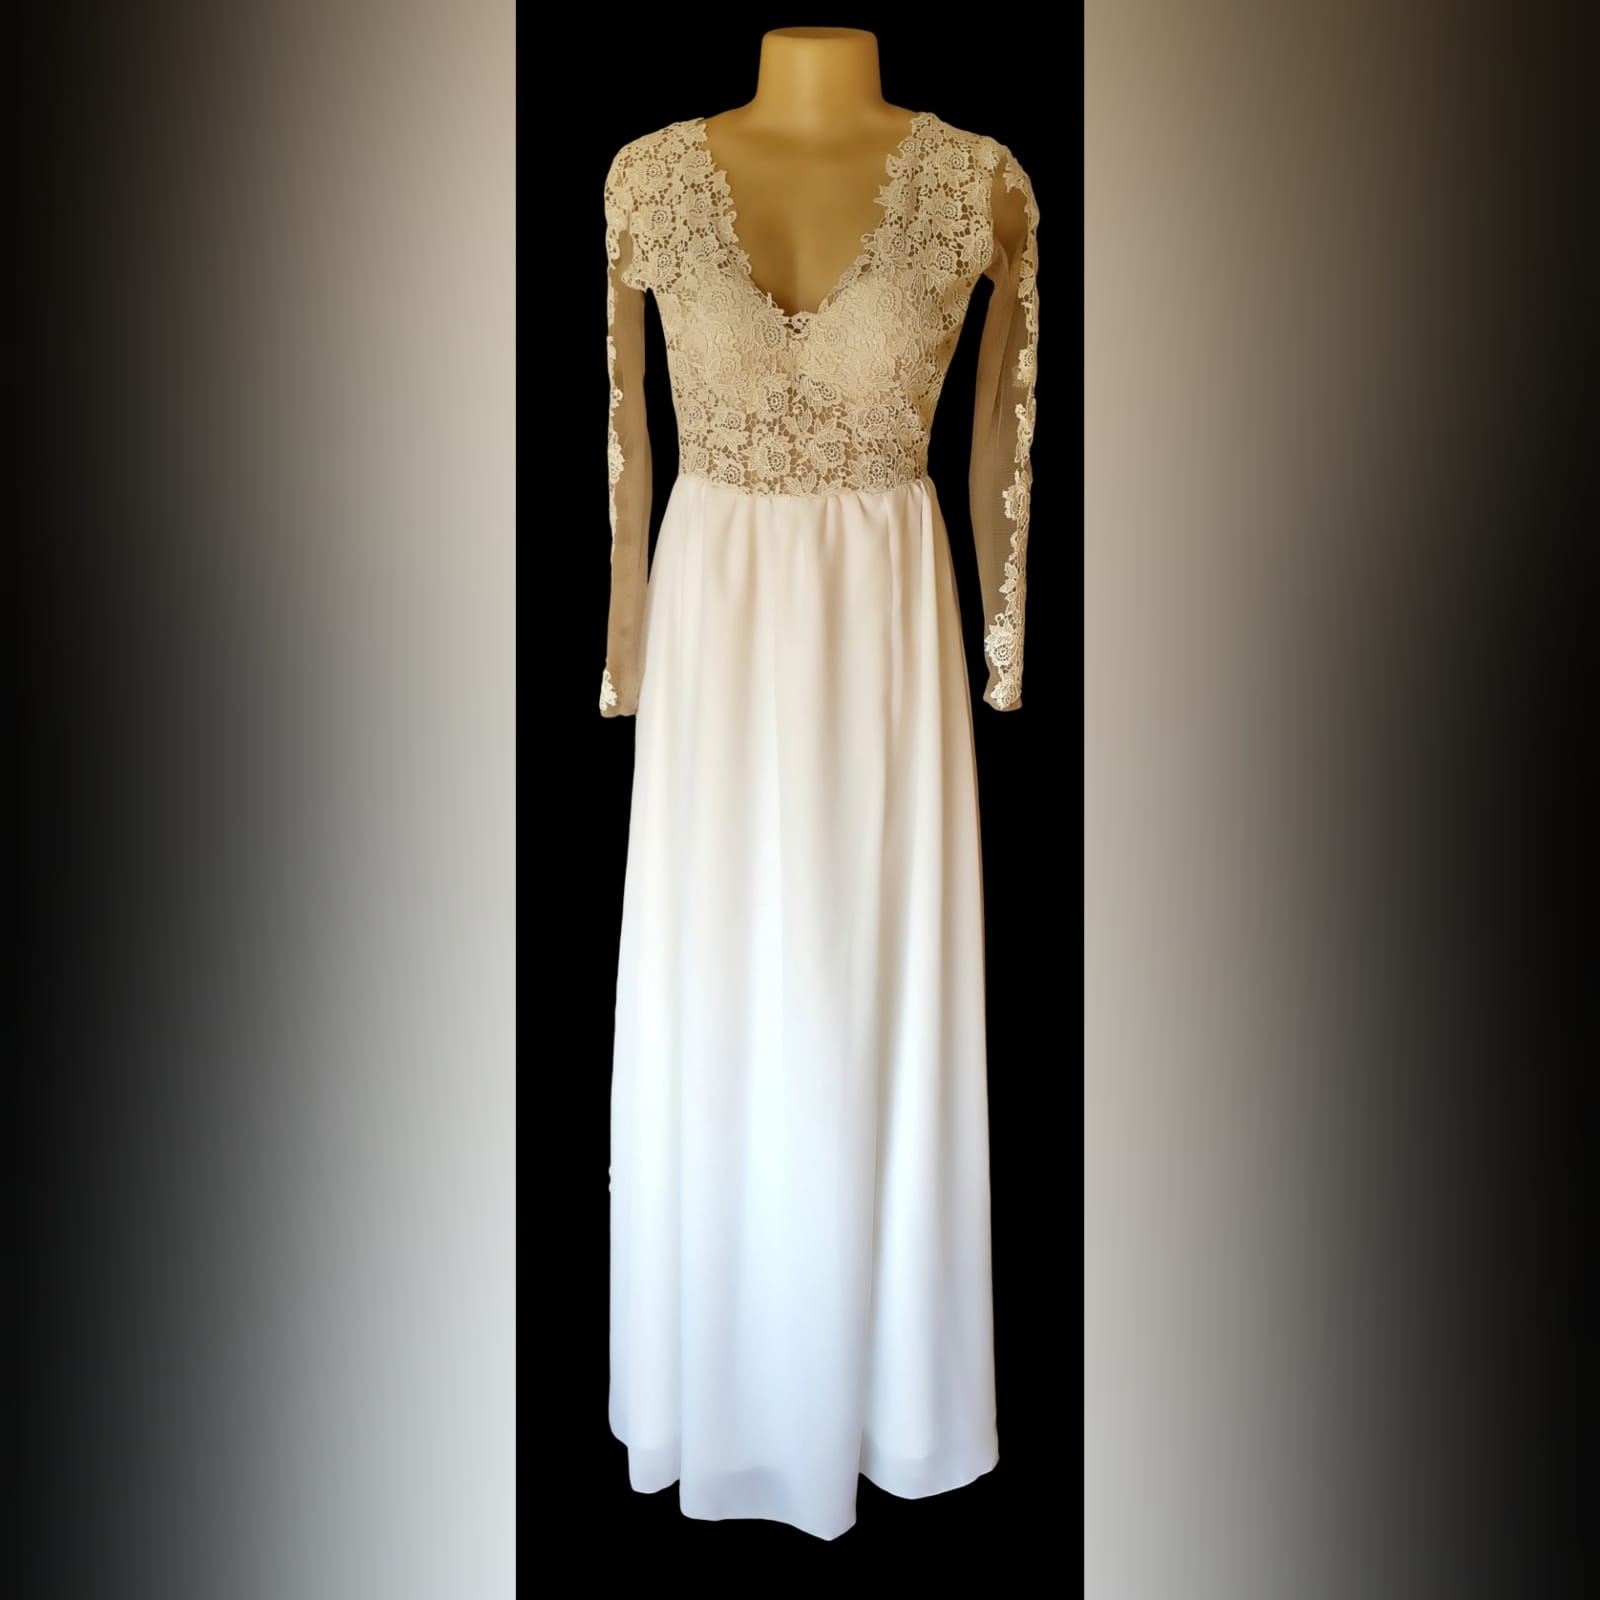 Ivory long chiffon and lace prom dress 2 ivory long chiffon and lace prom dress, with an illusion lace bodice with a rounded open back, long sheer sleeves detailed with lace, and a slit.